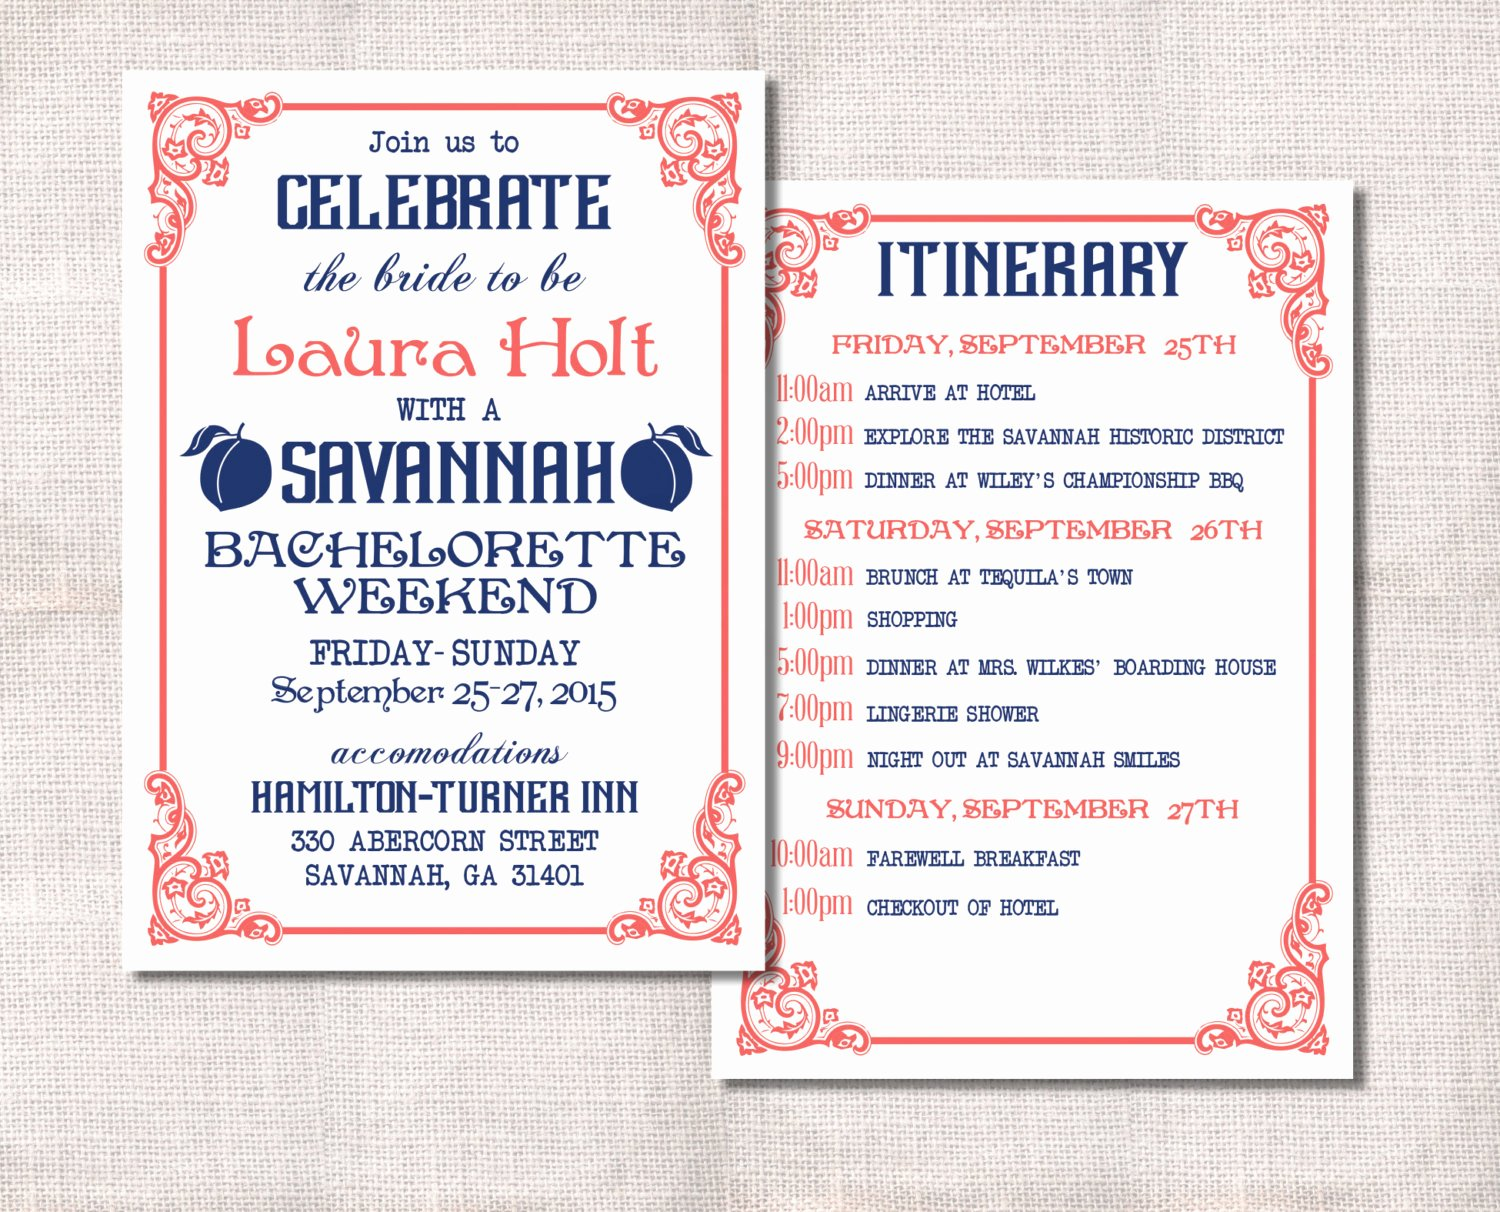 Bachelorette Party Itinerary Template Lovely Bachelorette Party Weekend Invitation and Itinerary Custom